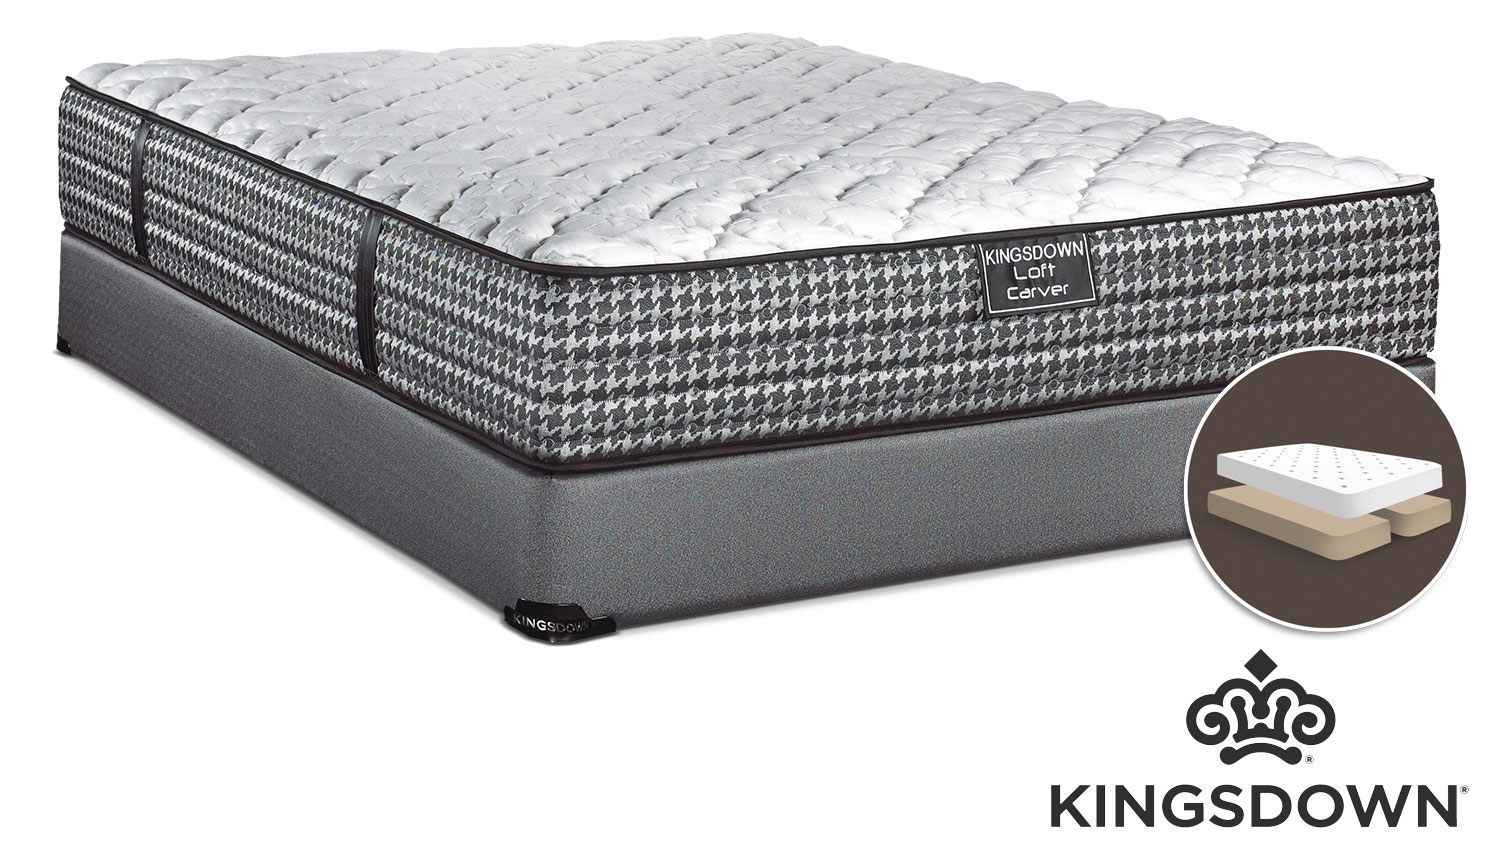 Kingsdown Carver King Mattress/Boxspring Set